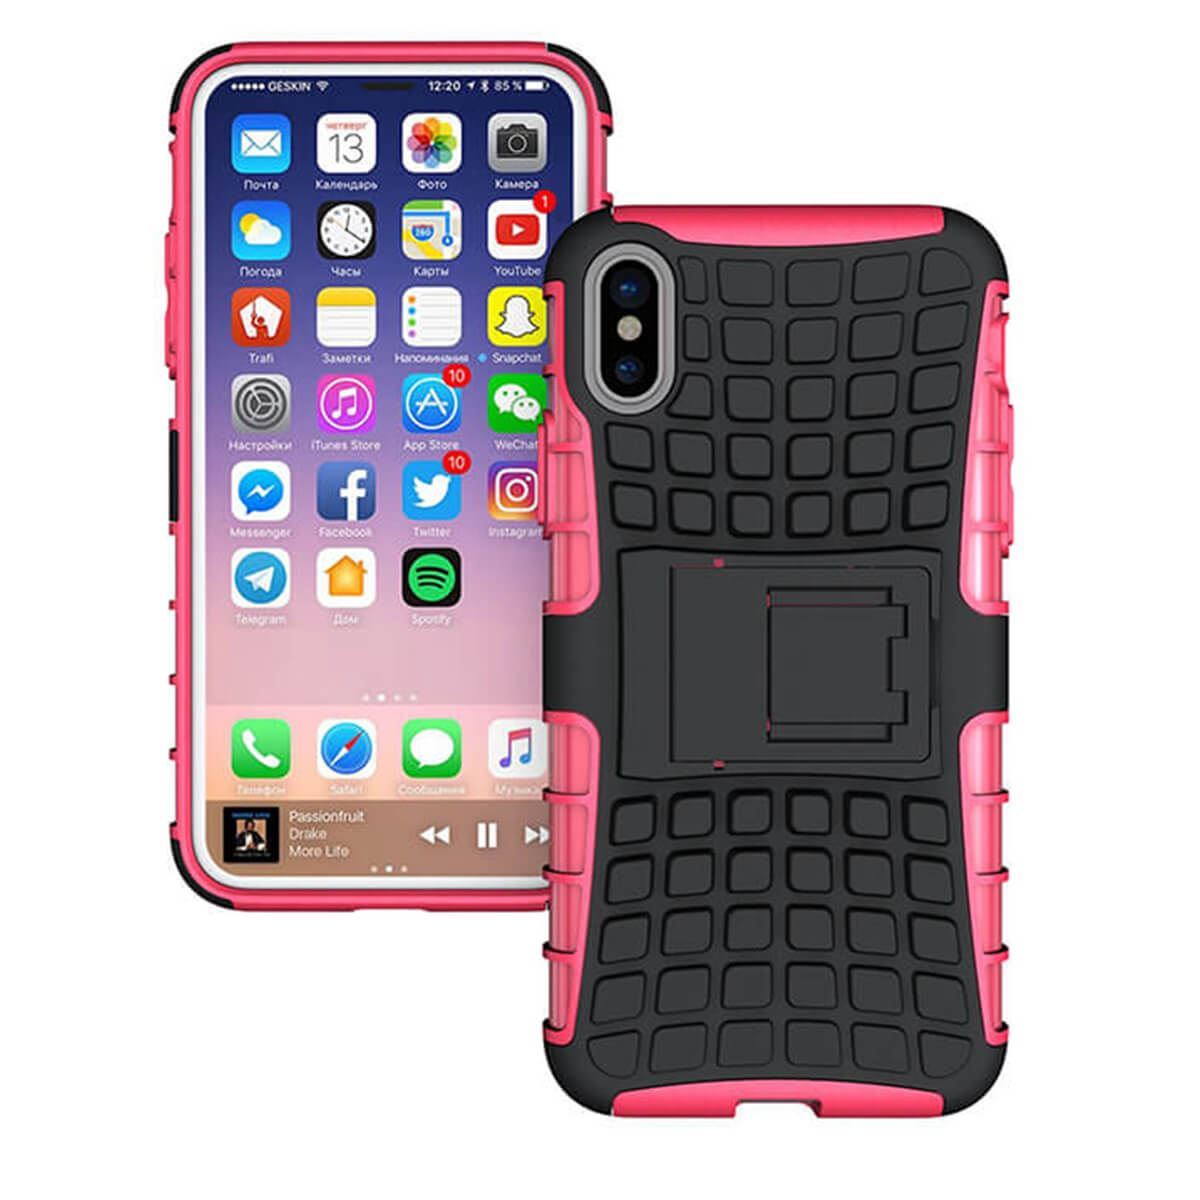 Shockproof-Case-Apple-iPhone-10-X-8-7-6s-Se-5-Hard-Heavy-Duty-Stand-Armour-Cover thumbnail 13